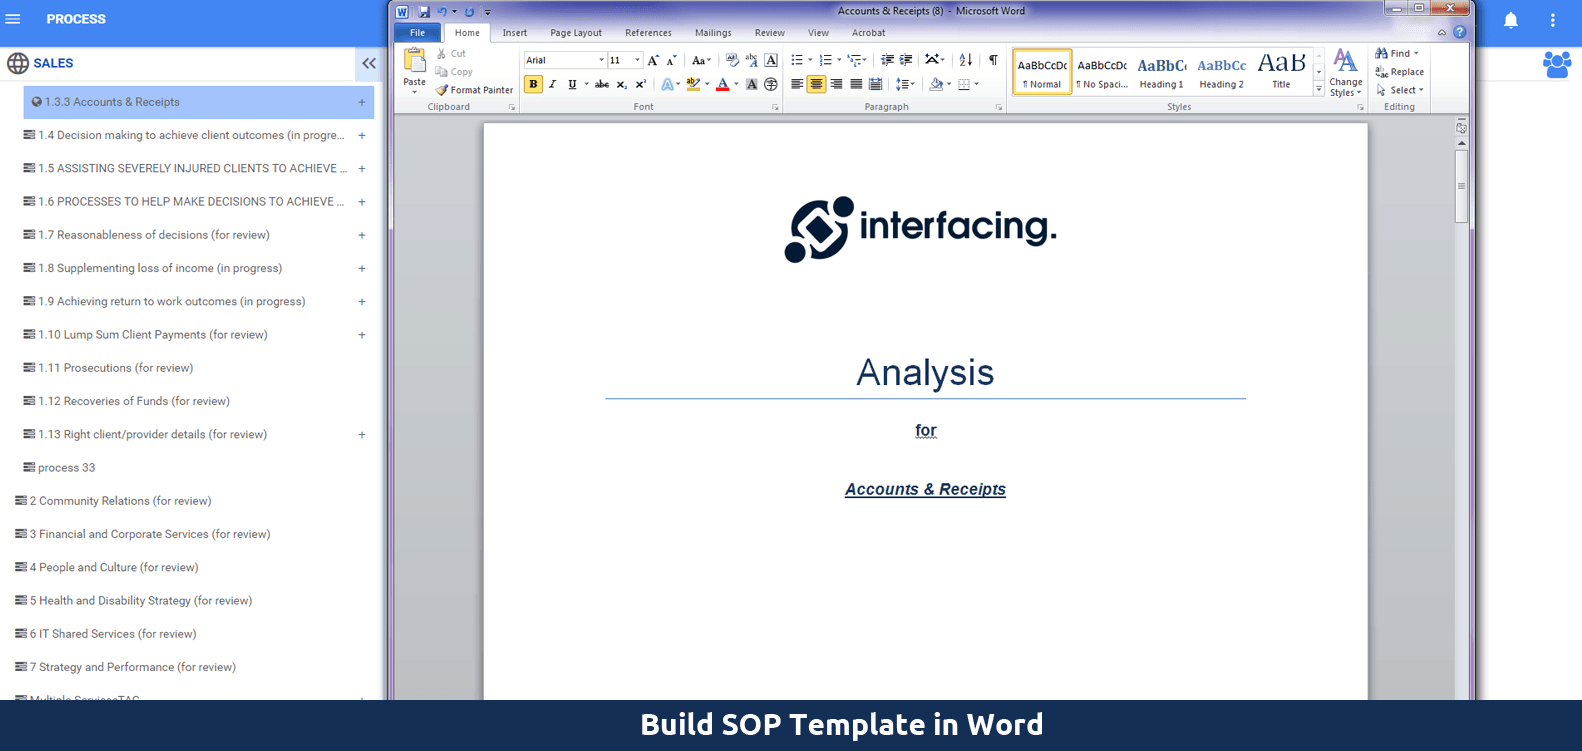 Build SOP template in word